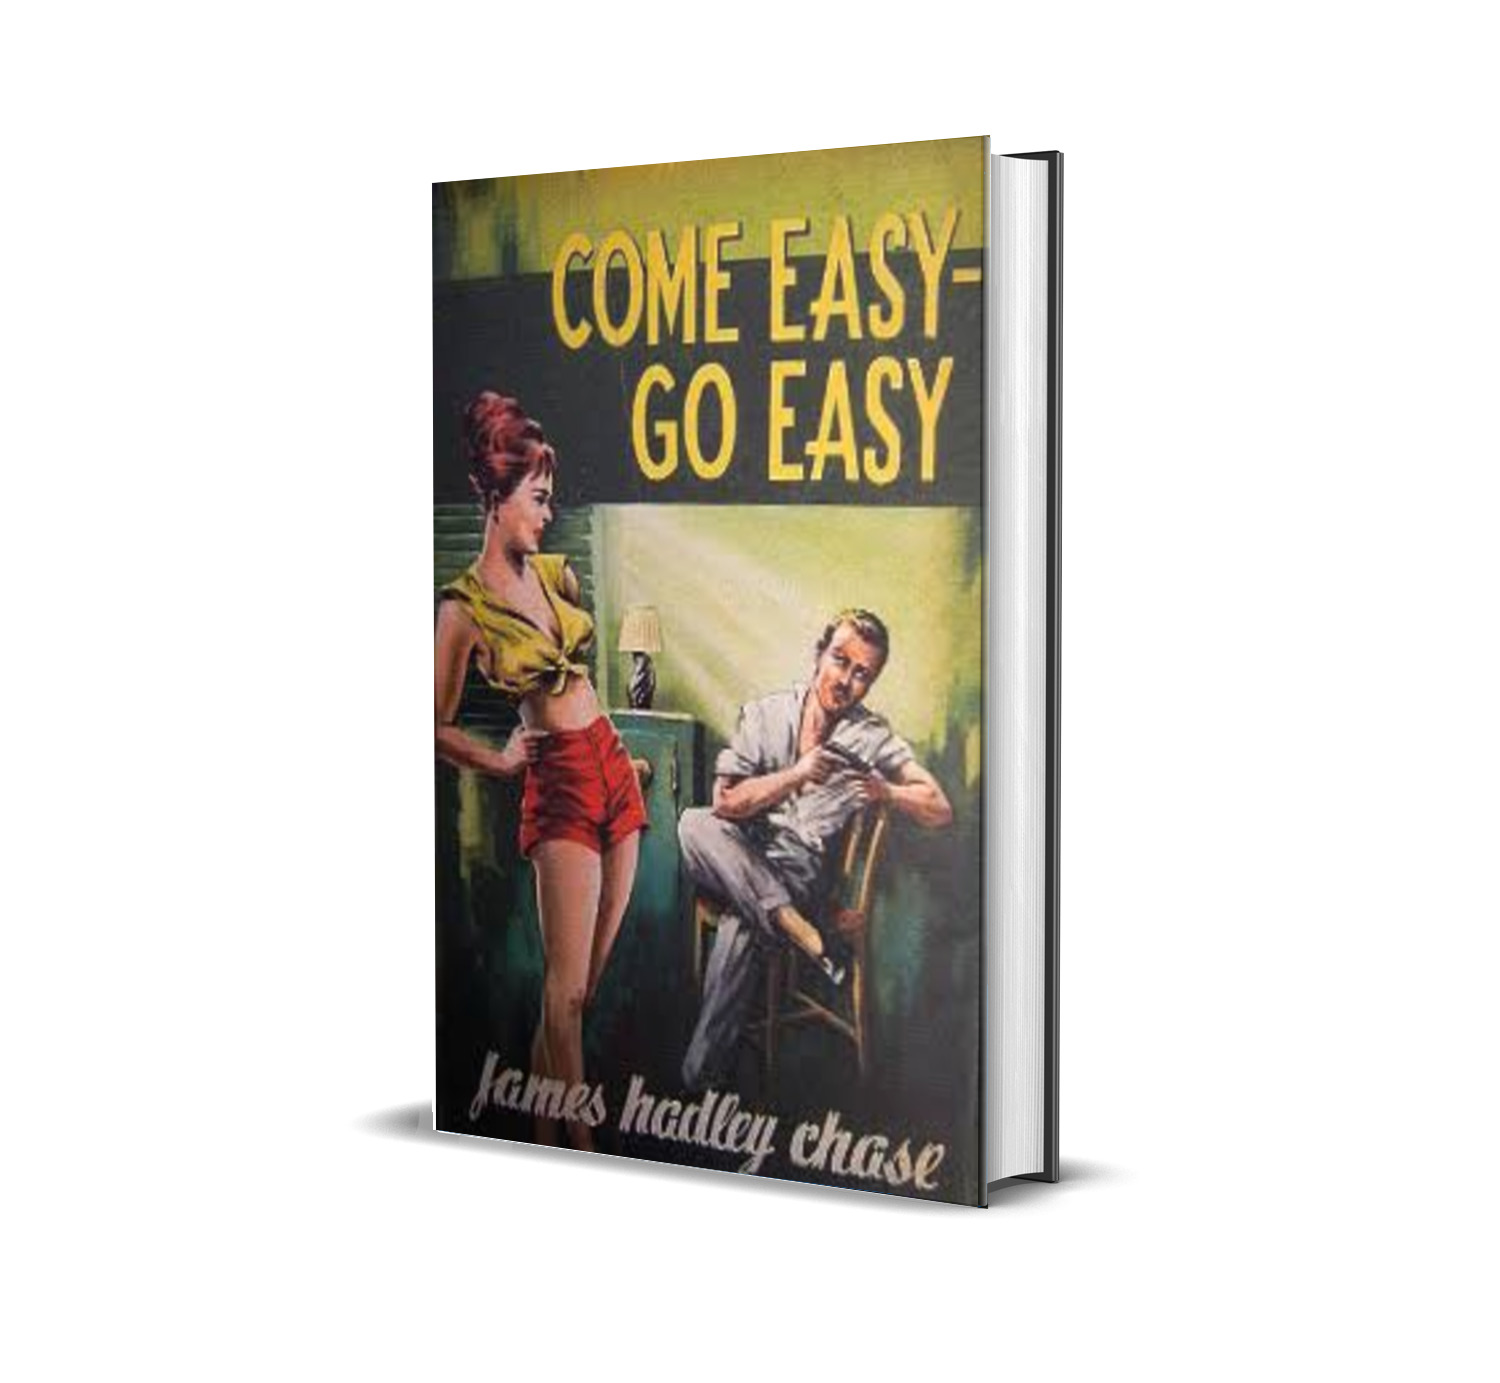 COME EASY GO EASY JAMES HADLEY CHASE